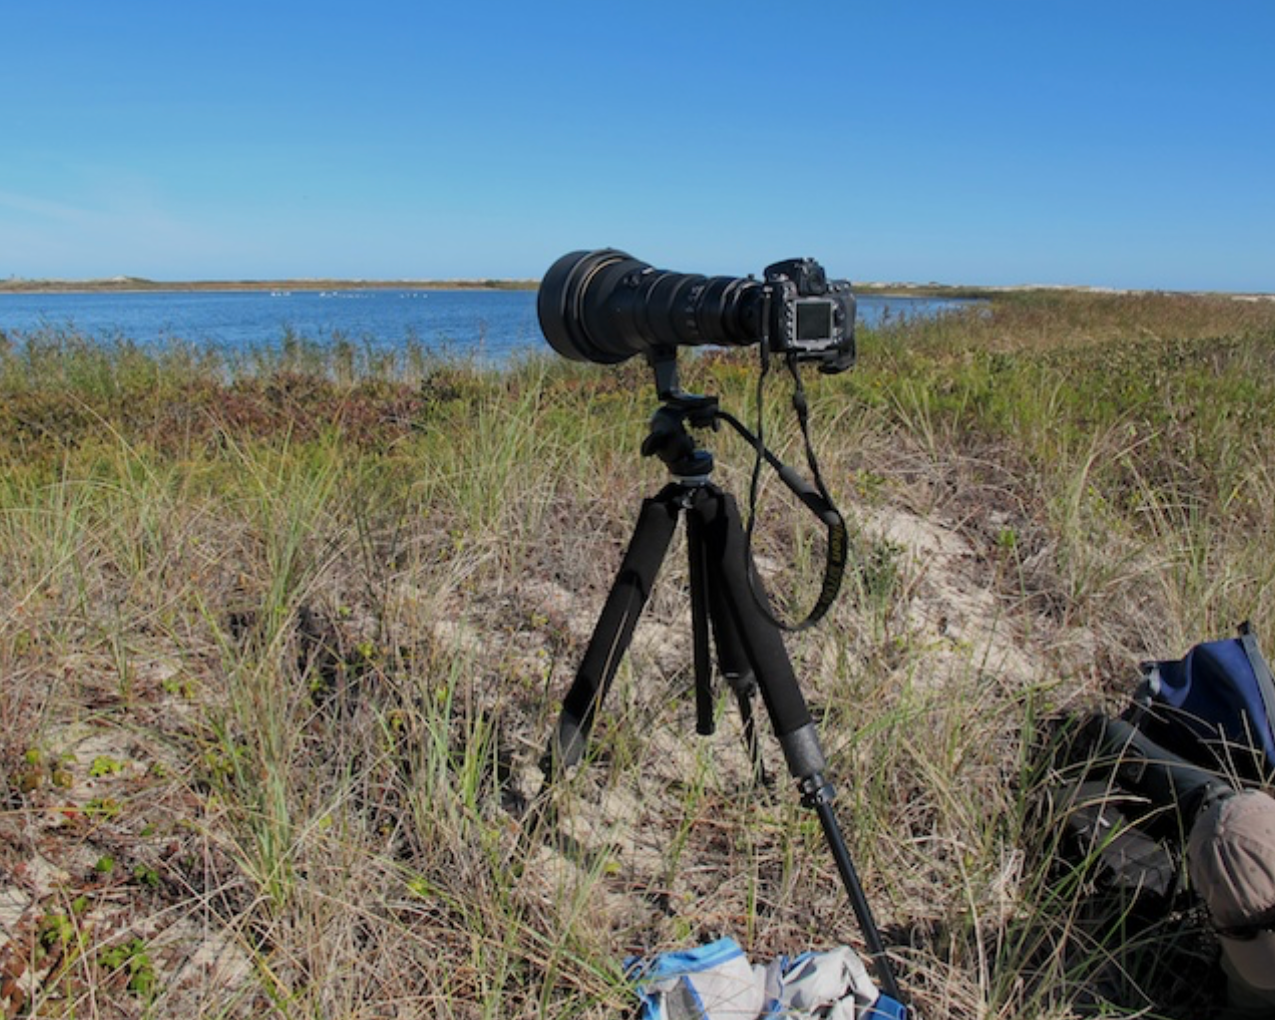 Set up for watching waterfowl at the Powderhole, MNWR